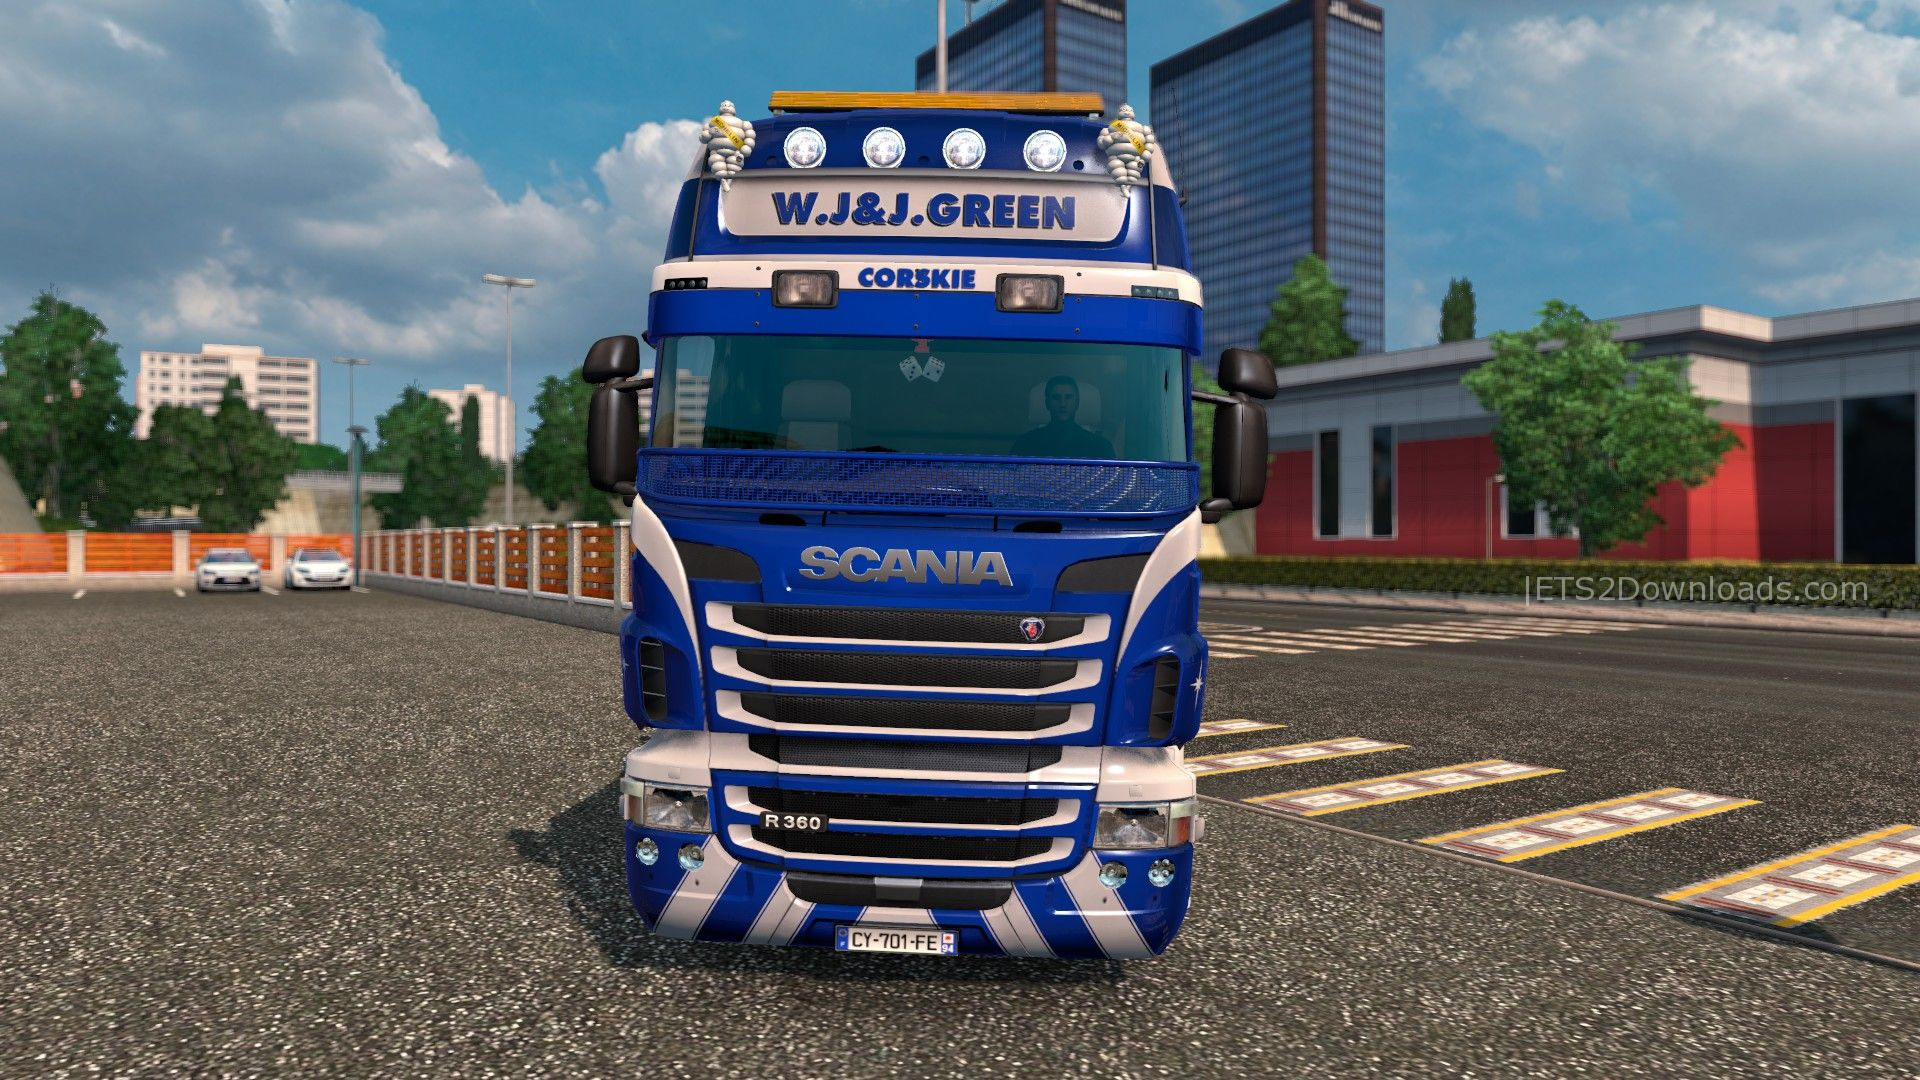 w-j-j-green-metallic-skin-for-scania-rjl-1